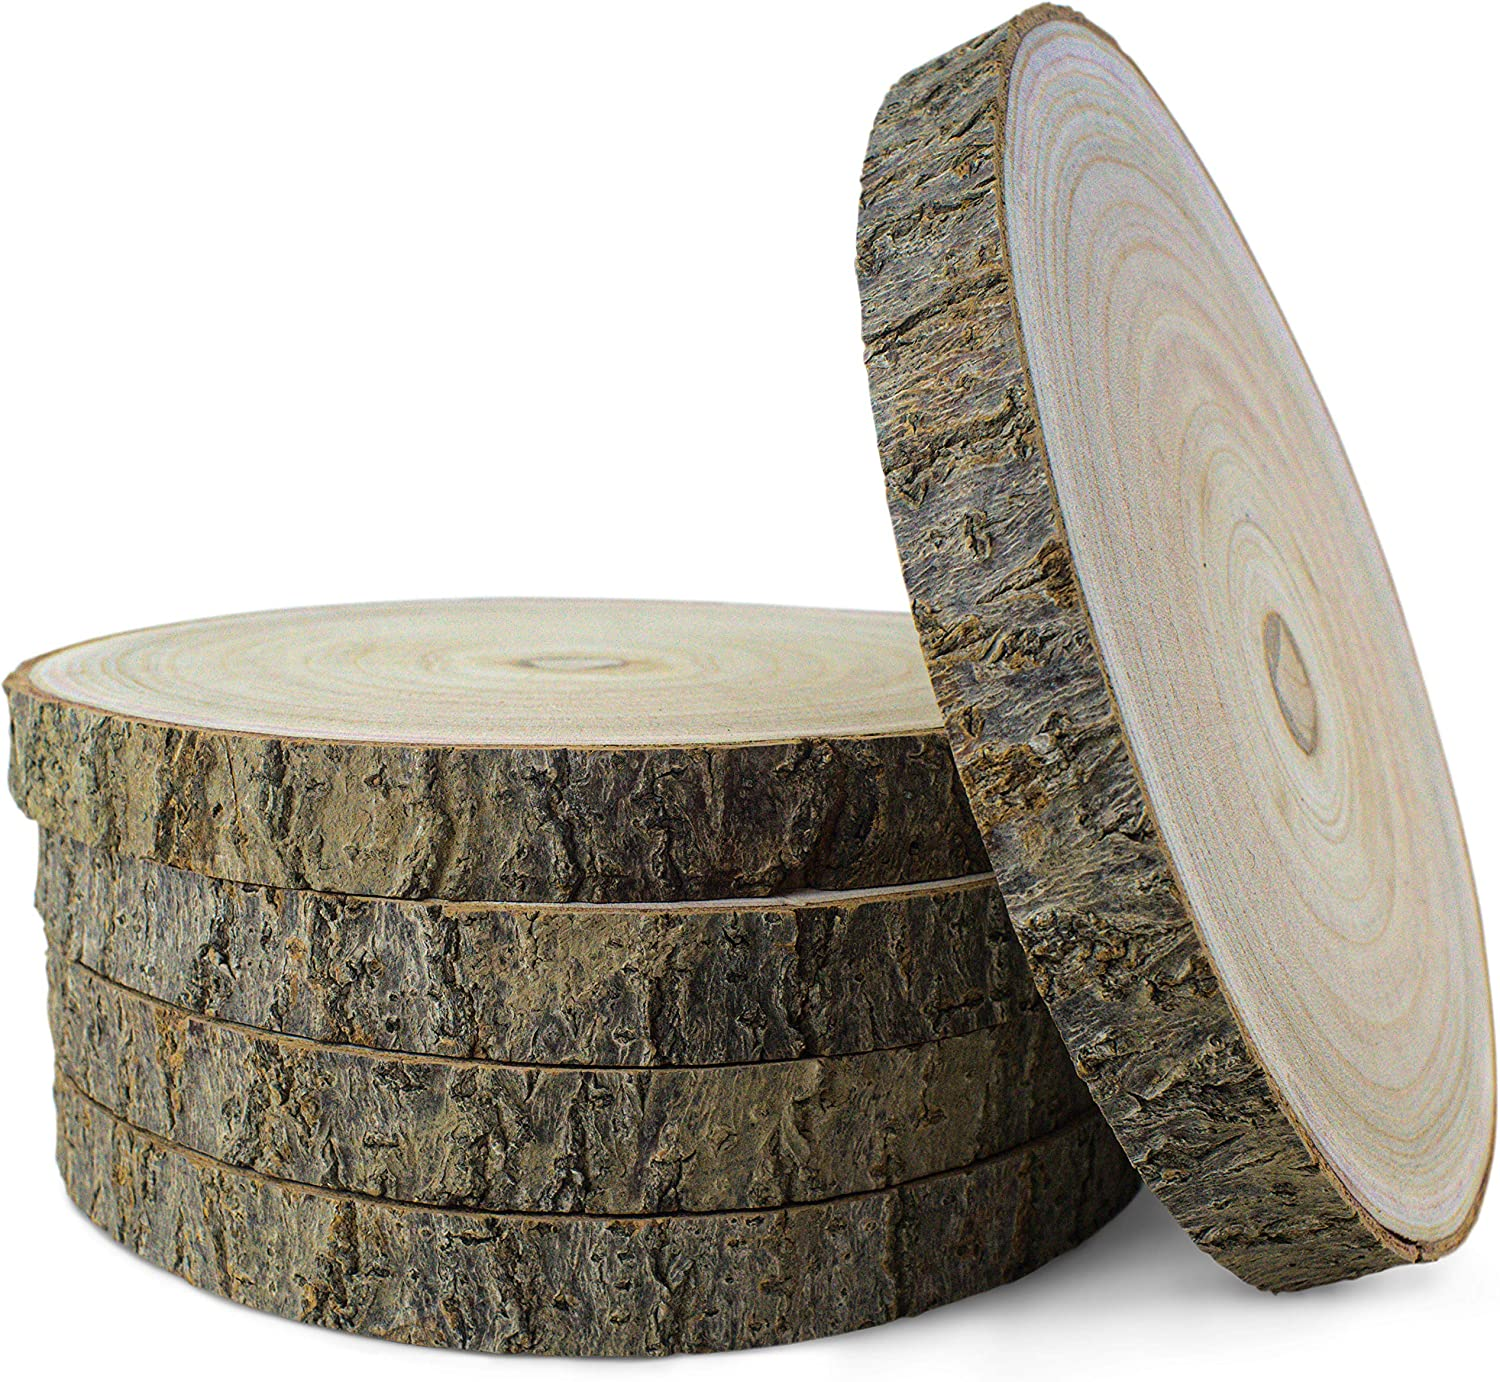 KARAVELLA Large Wood Slices for Centerpieces - 5 Pack Wood Centerpieces for Tables, 9 to 11 inches, Rustic Wedding Centerpiece, Natural Wood Slabs w/ & Minor Cracks & bark Loss